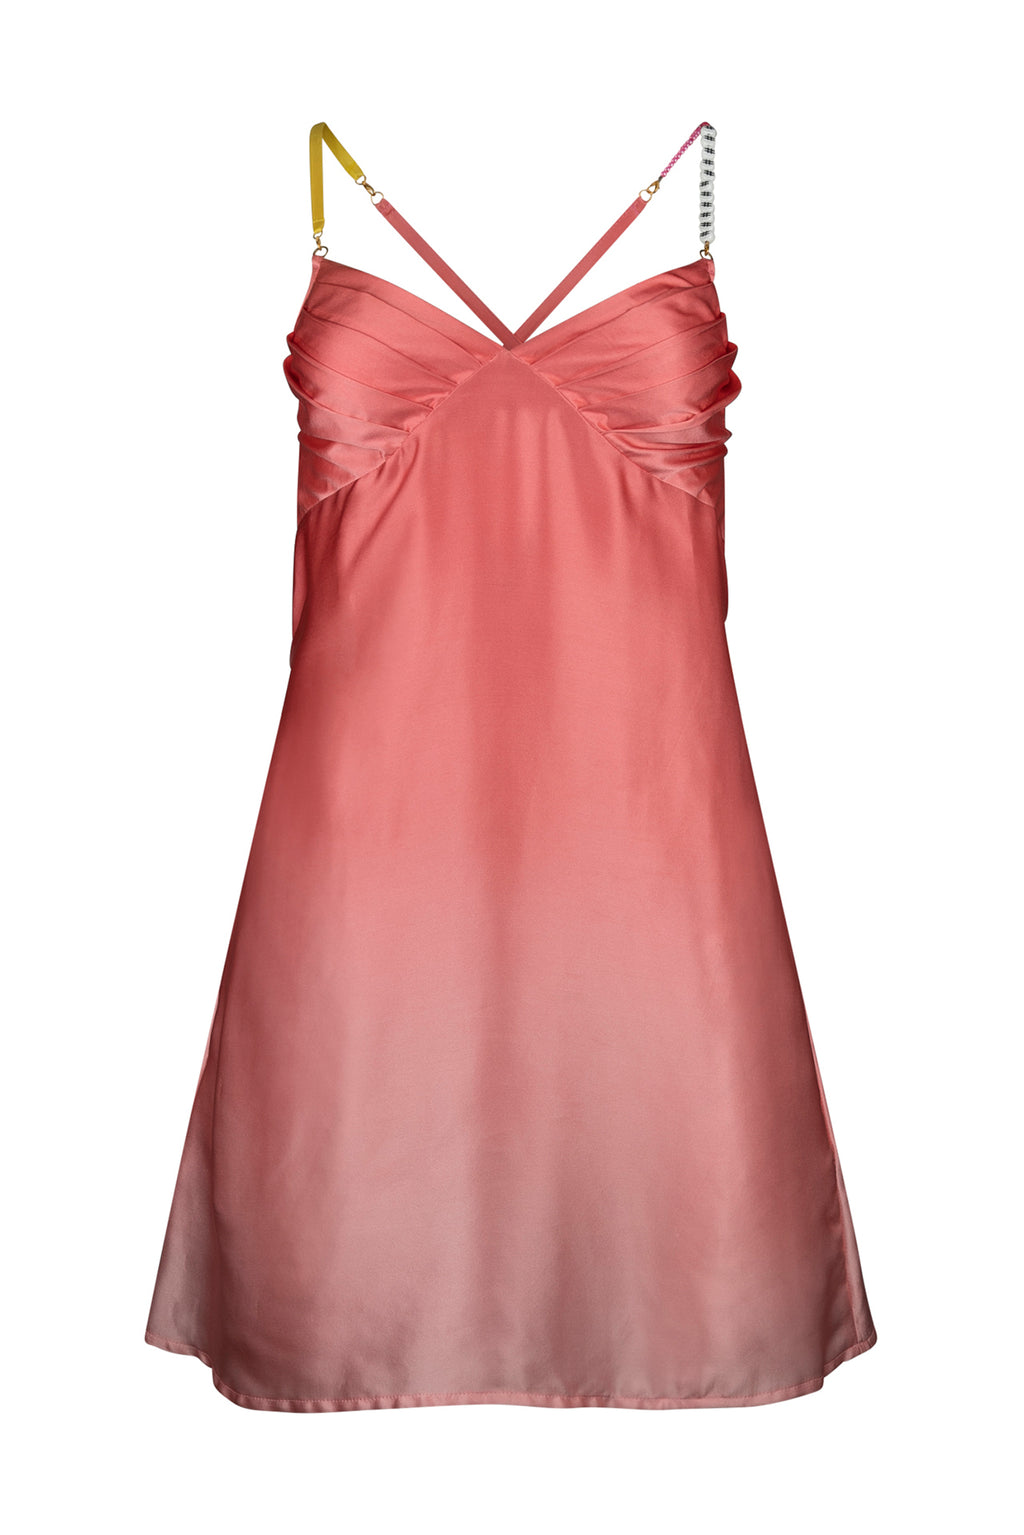 Vintage Gradient Satin Summer Dress